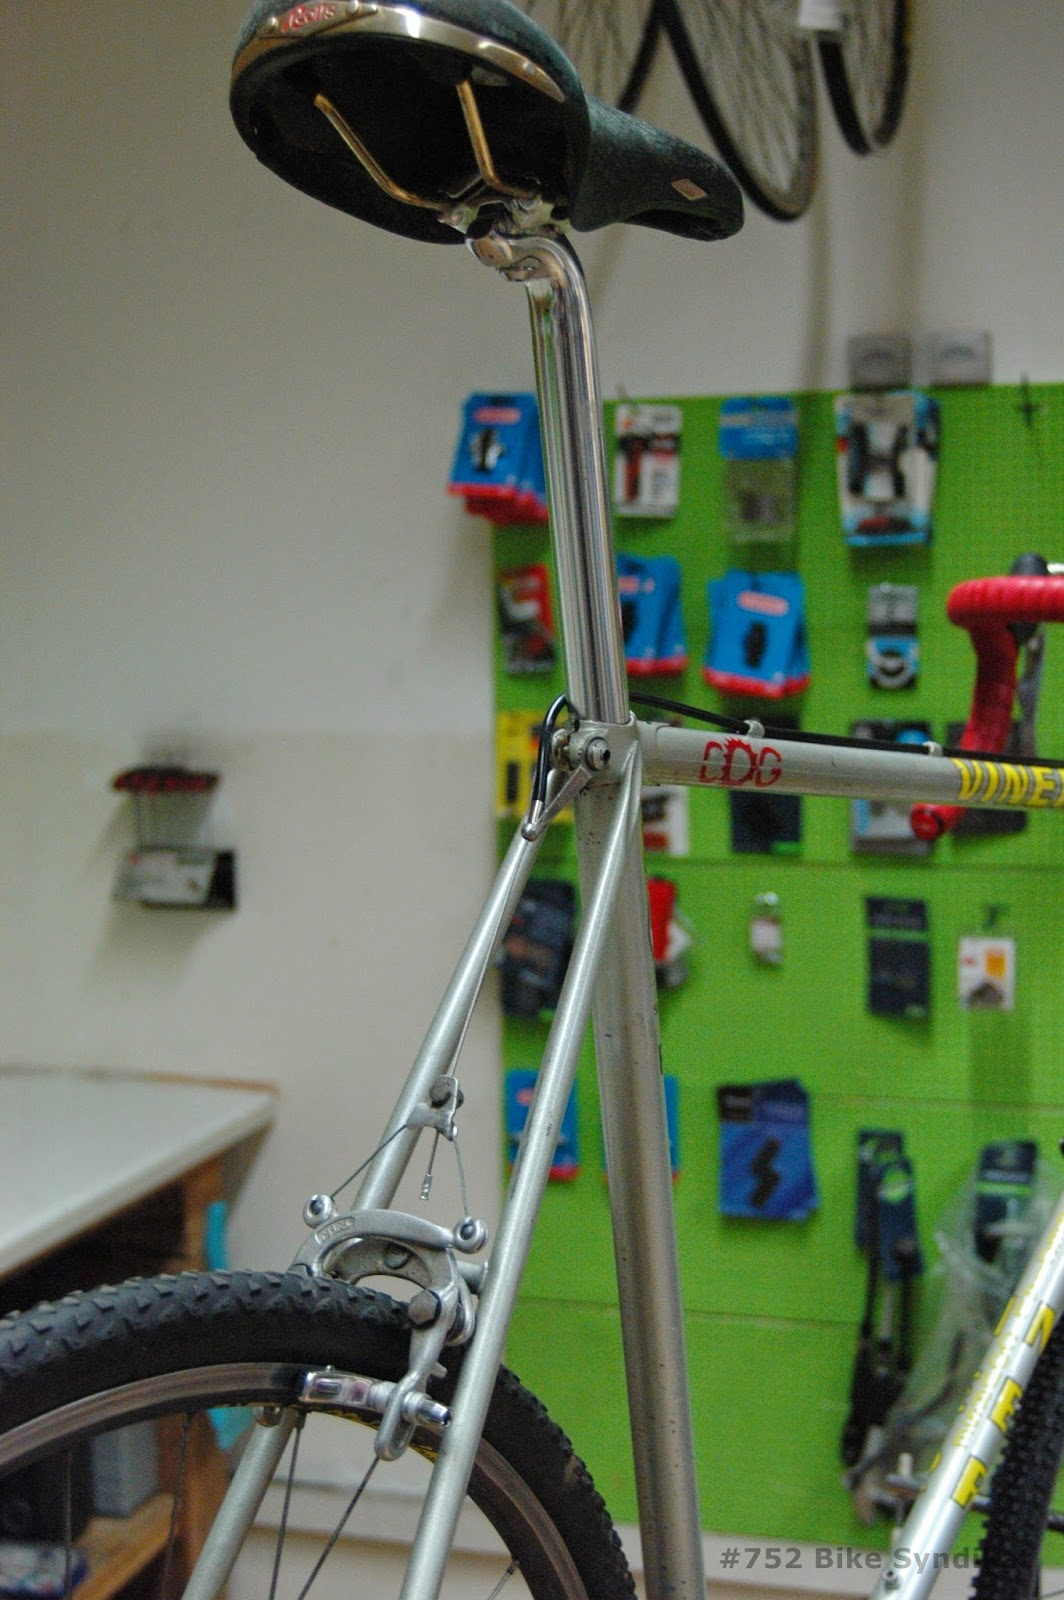 Viner vintage roadbike build, Rolls saddle